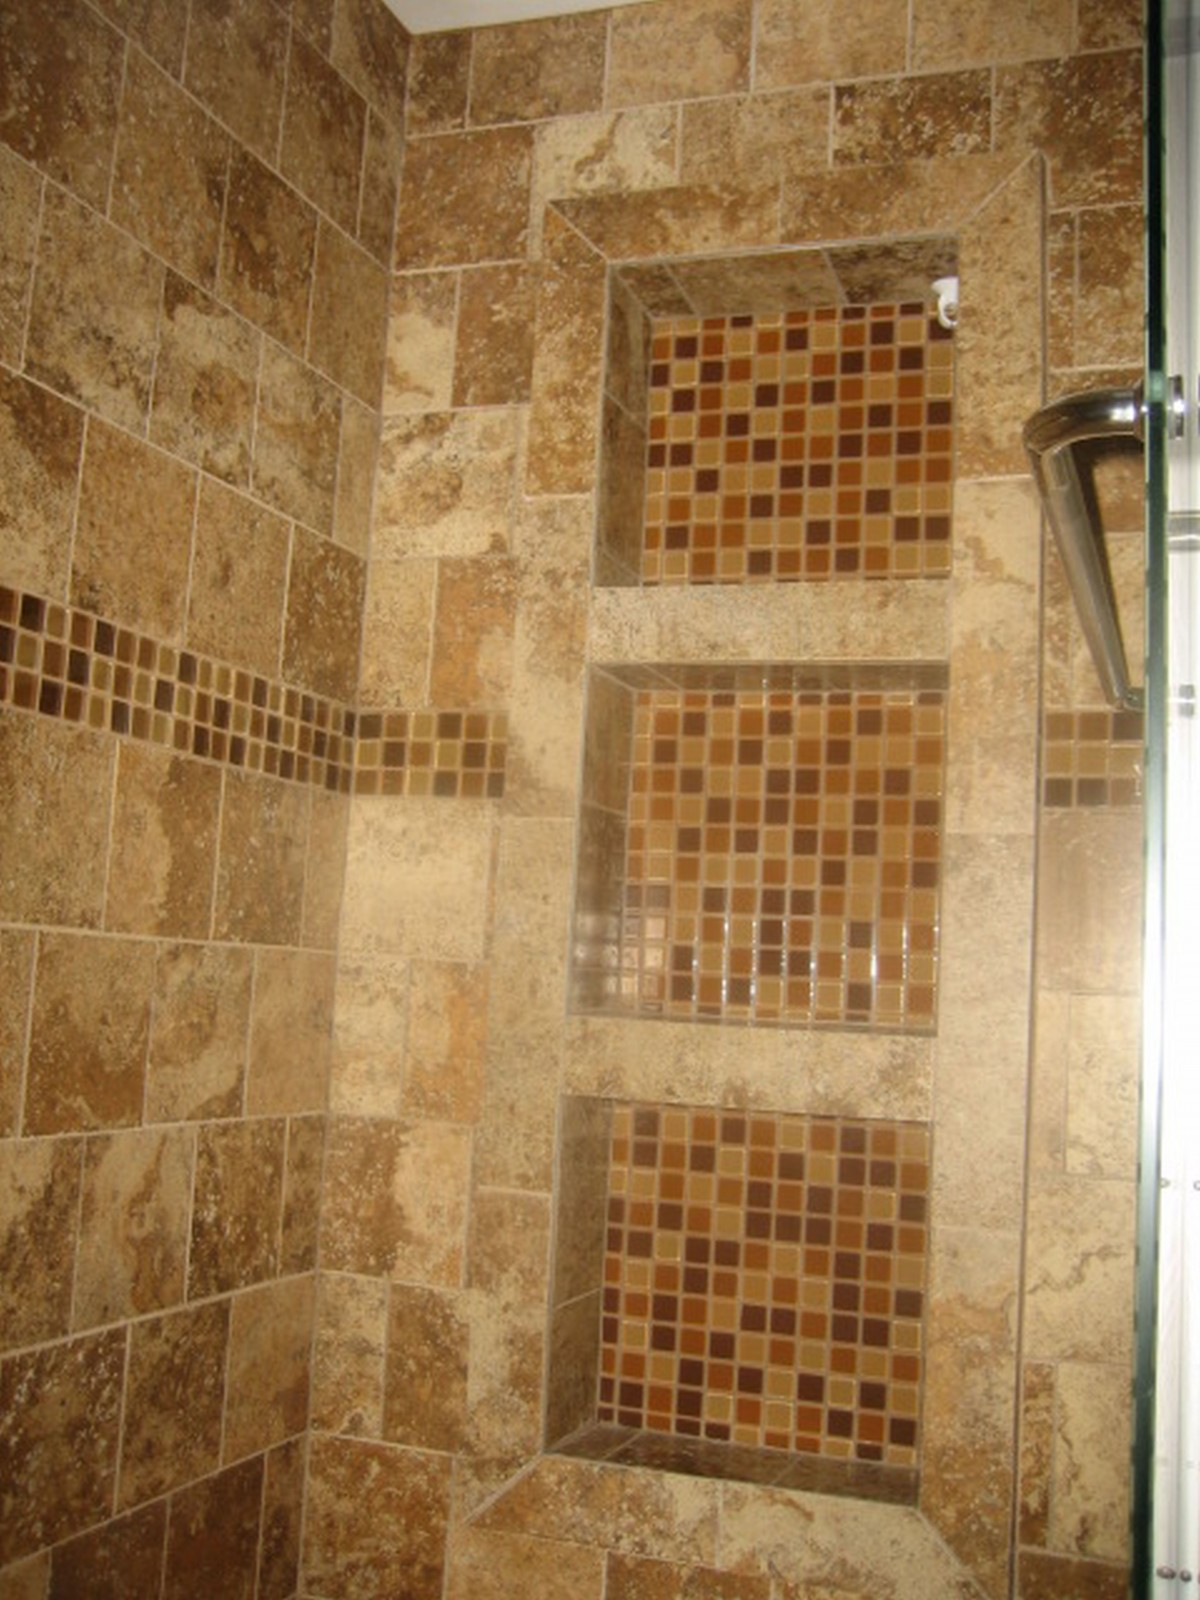 30 pictures of bathroom wall tile 12x12 for Modern bathroom wall tile designs